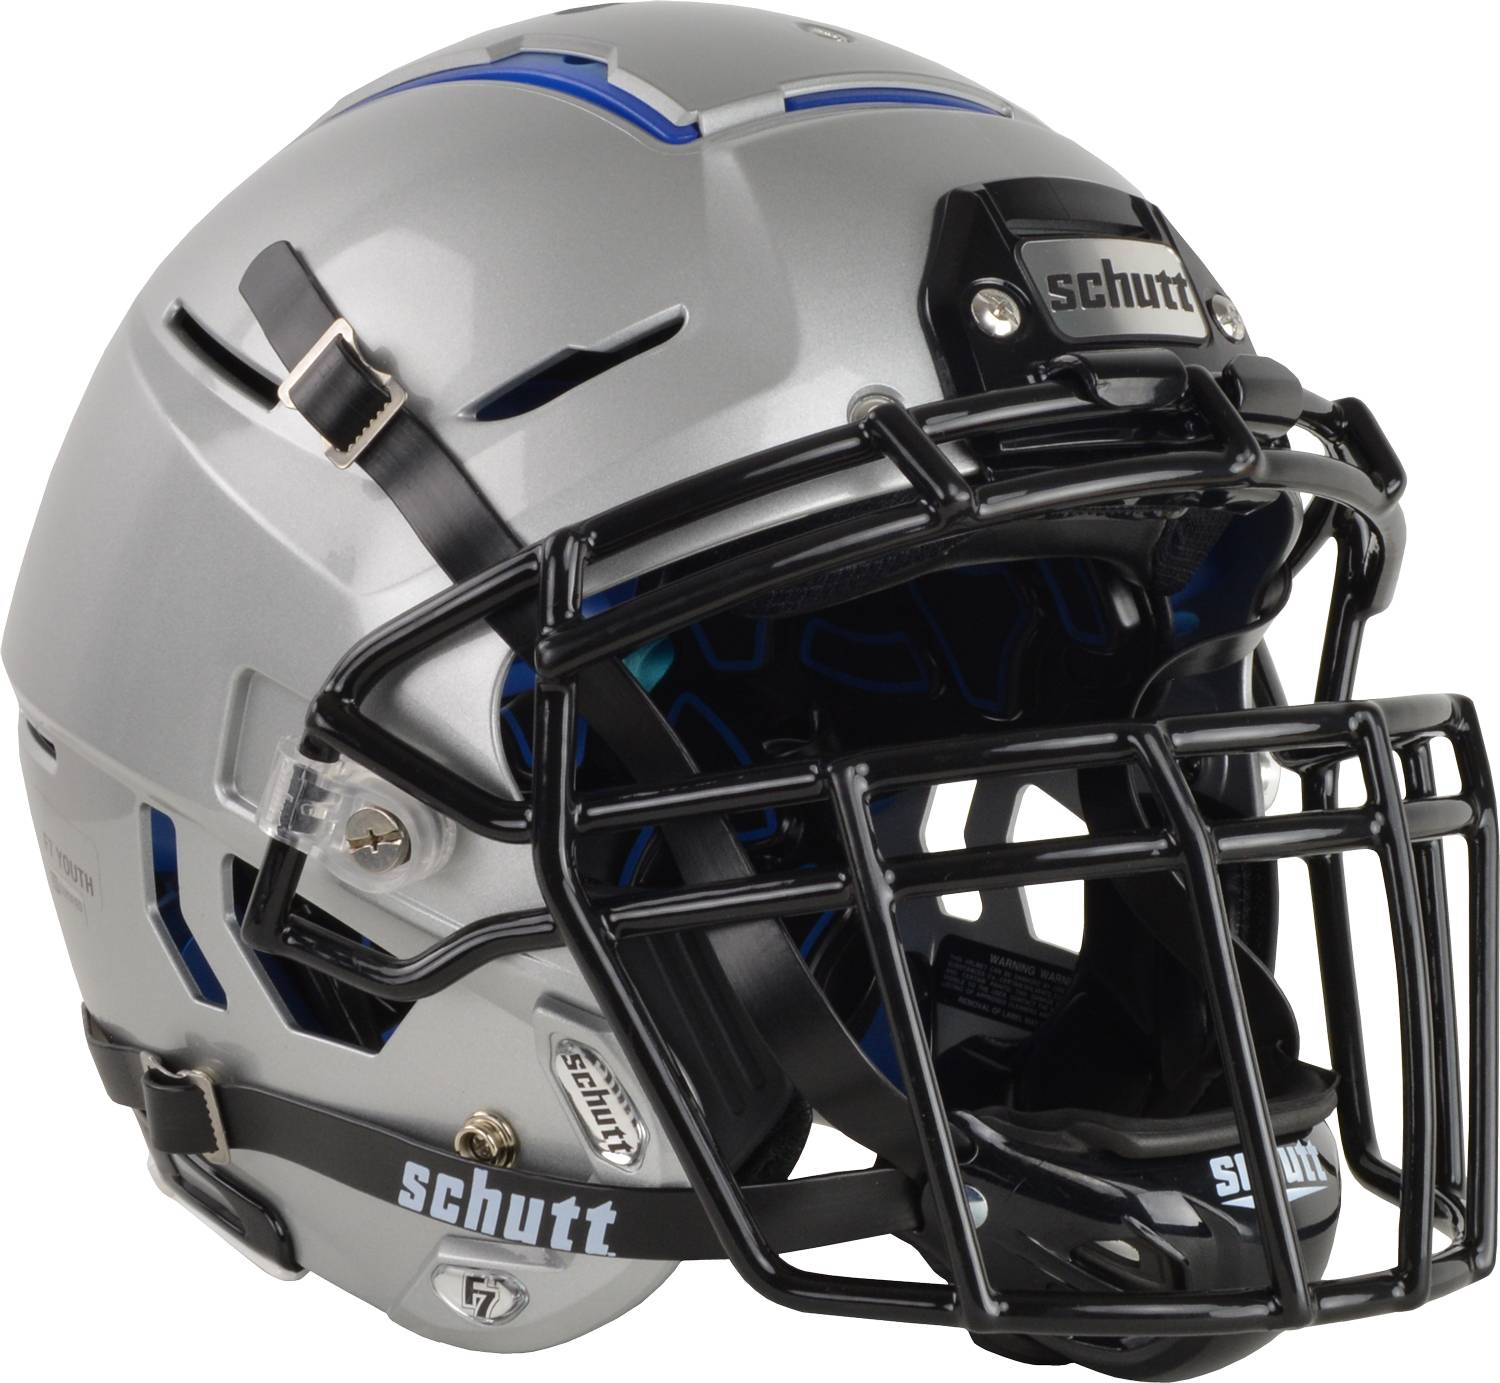 af3f85426a8 Schutt F7 Youth Football Helmet - Sports Unlimited